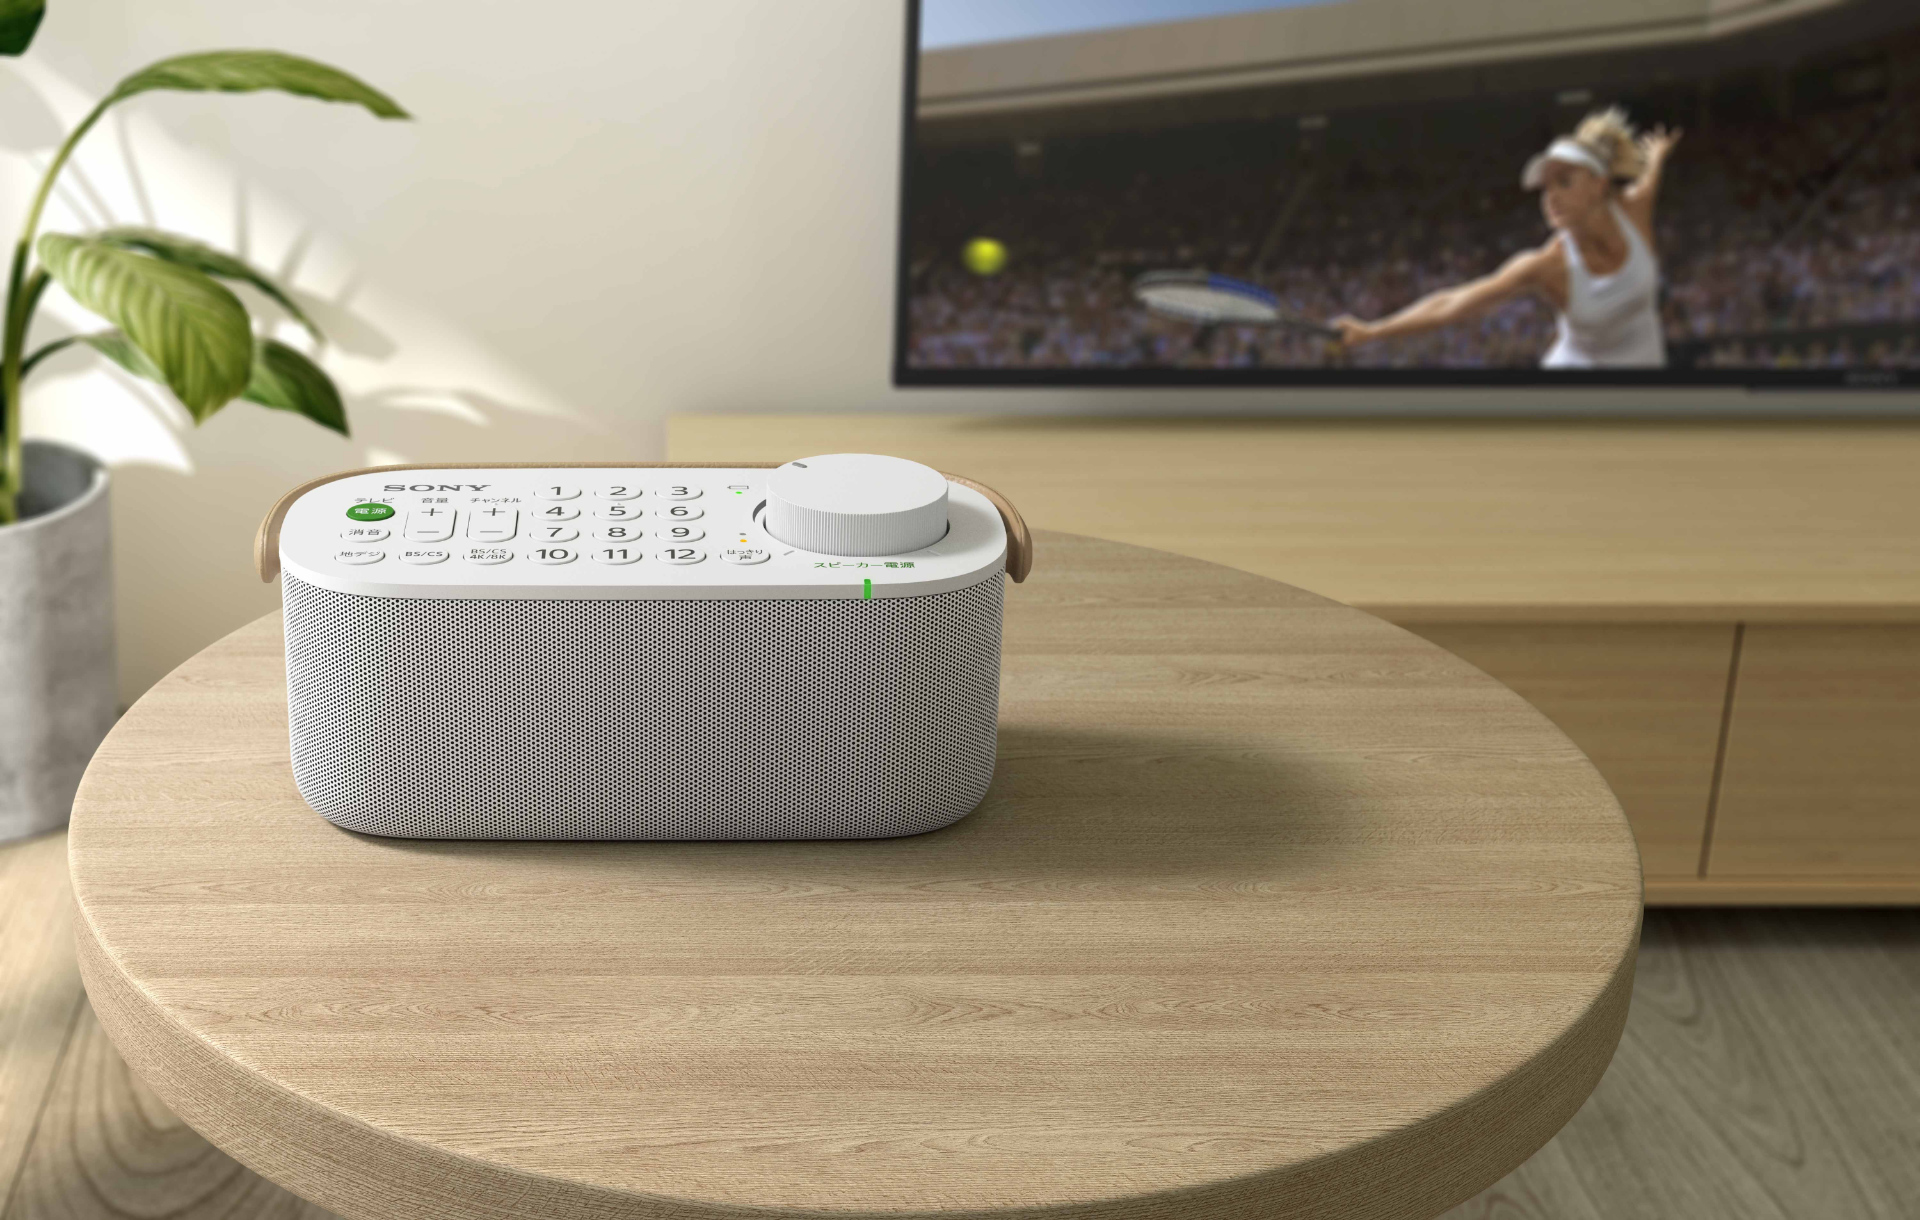 Sony's latest portable speaker comes with a built-in remote control